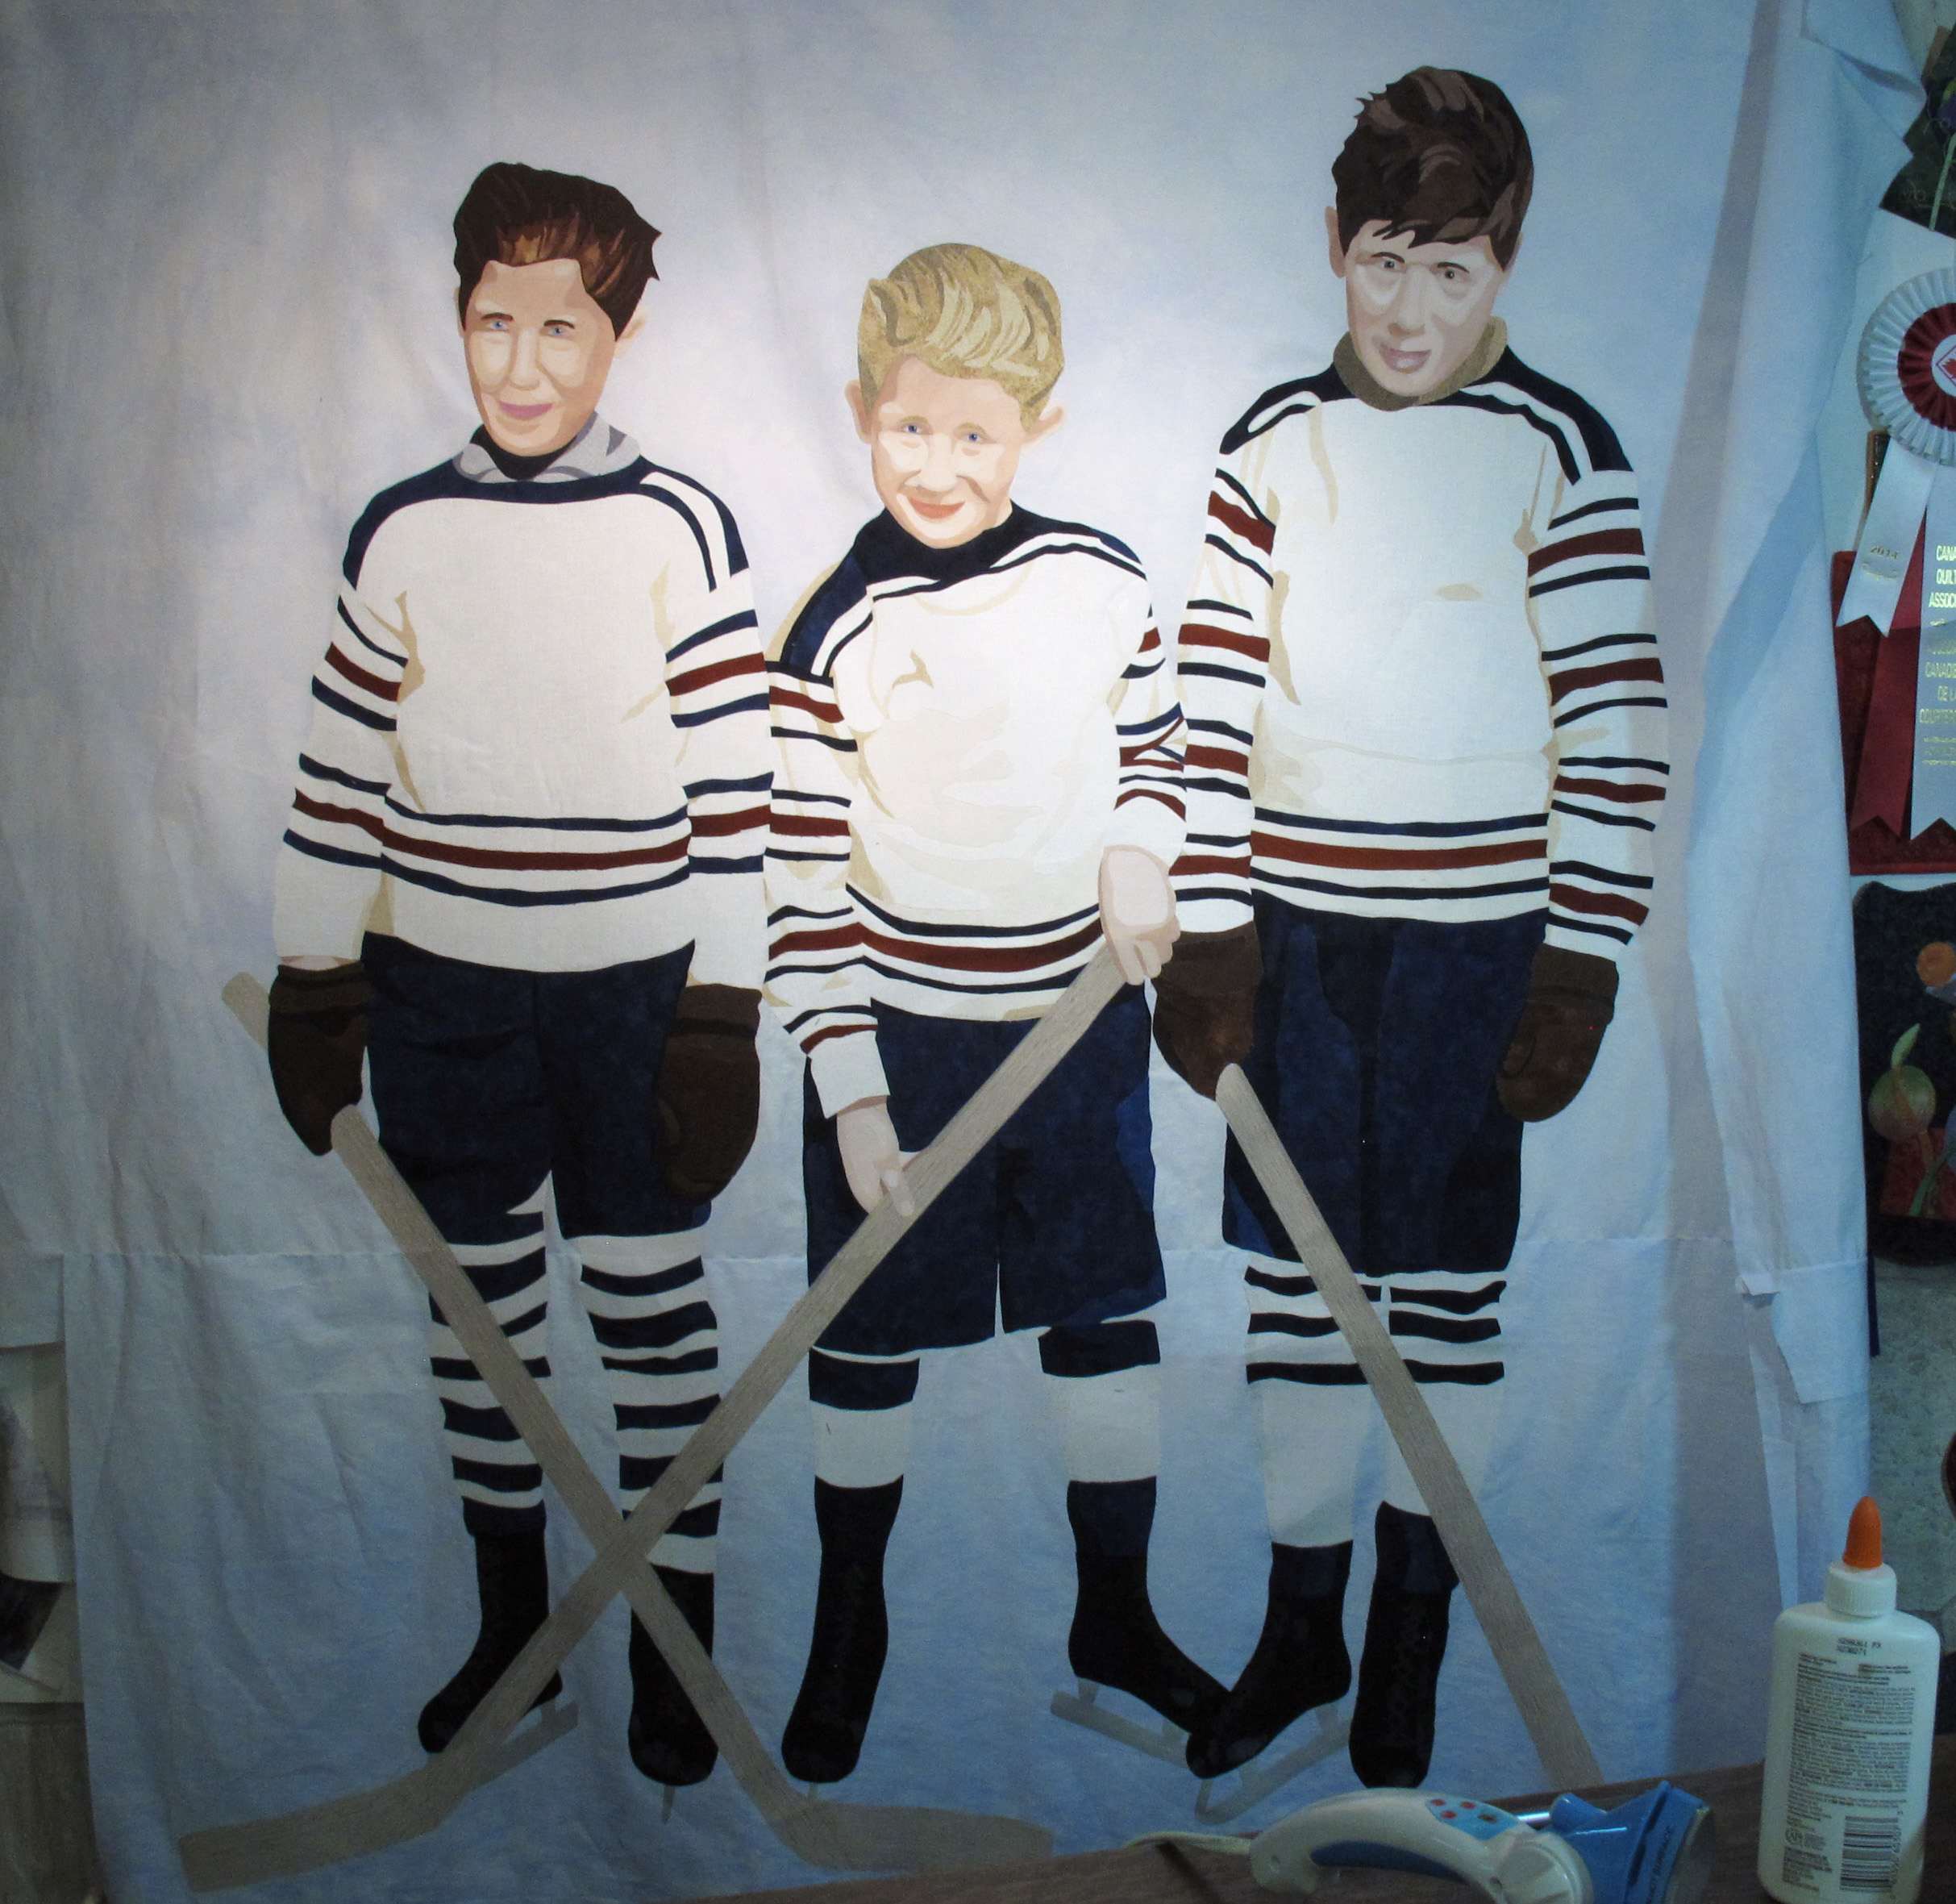 Three boys in hockey uniforms standing straight. Mistake corrected.